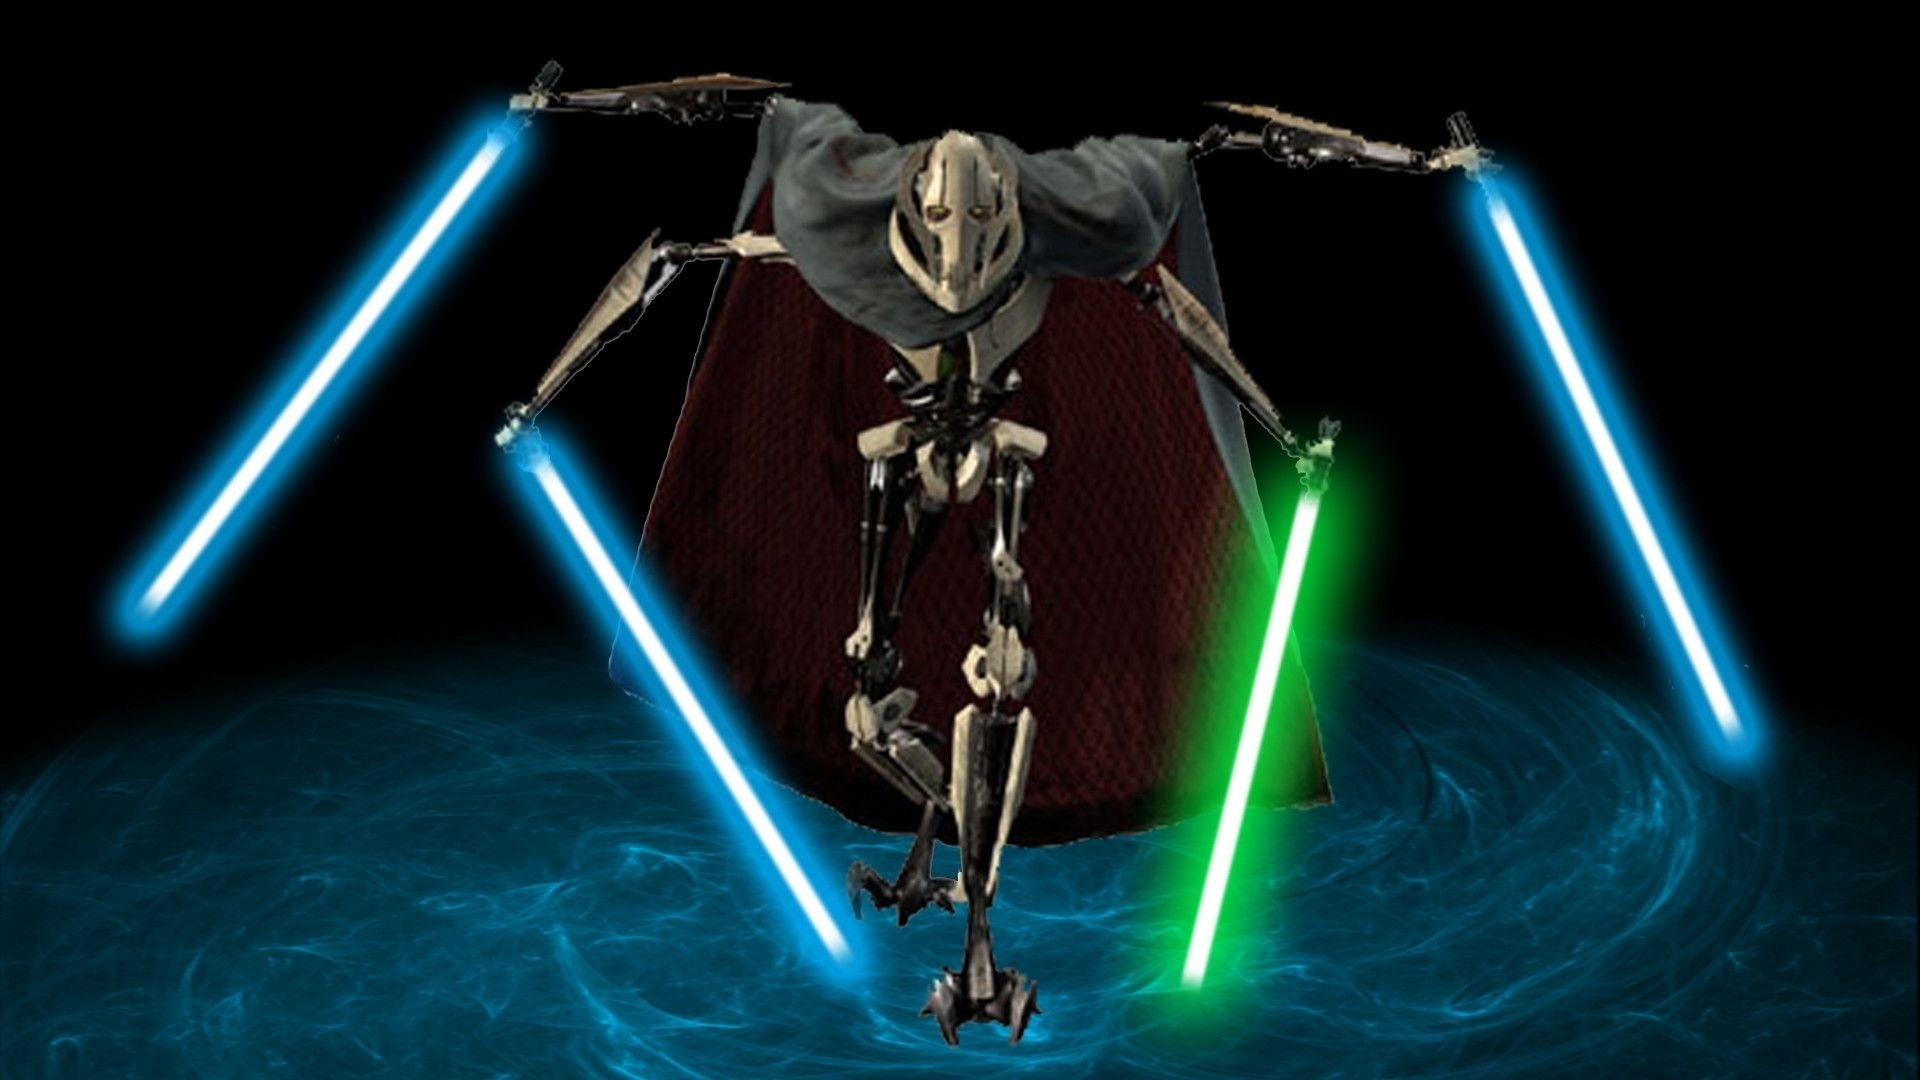 general grievous wallpaper hd (66+ images)